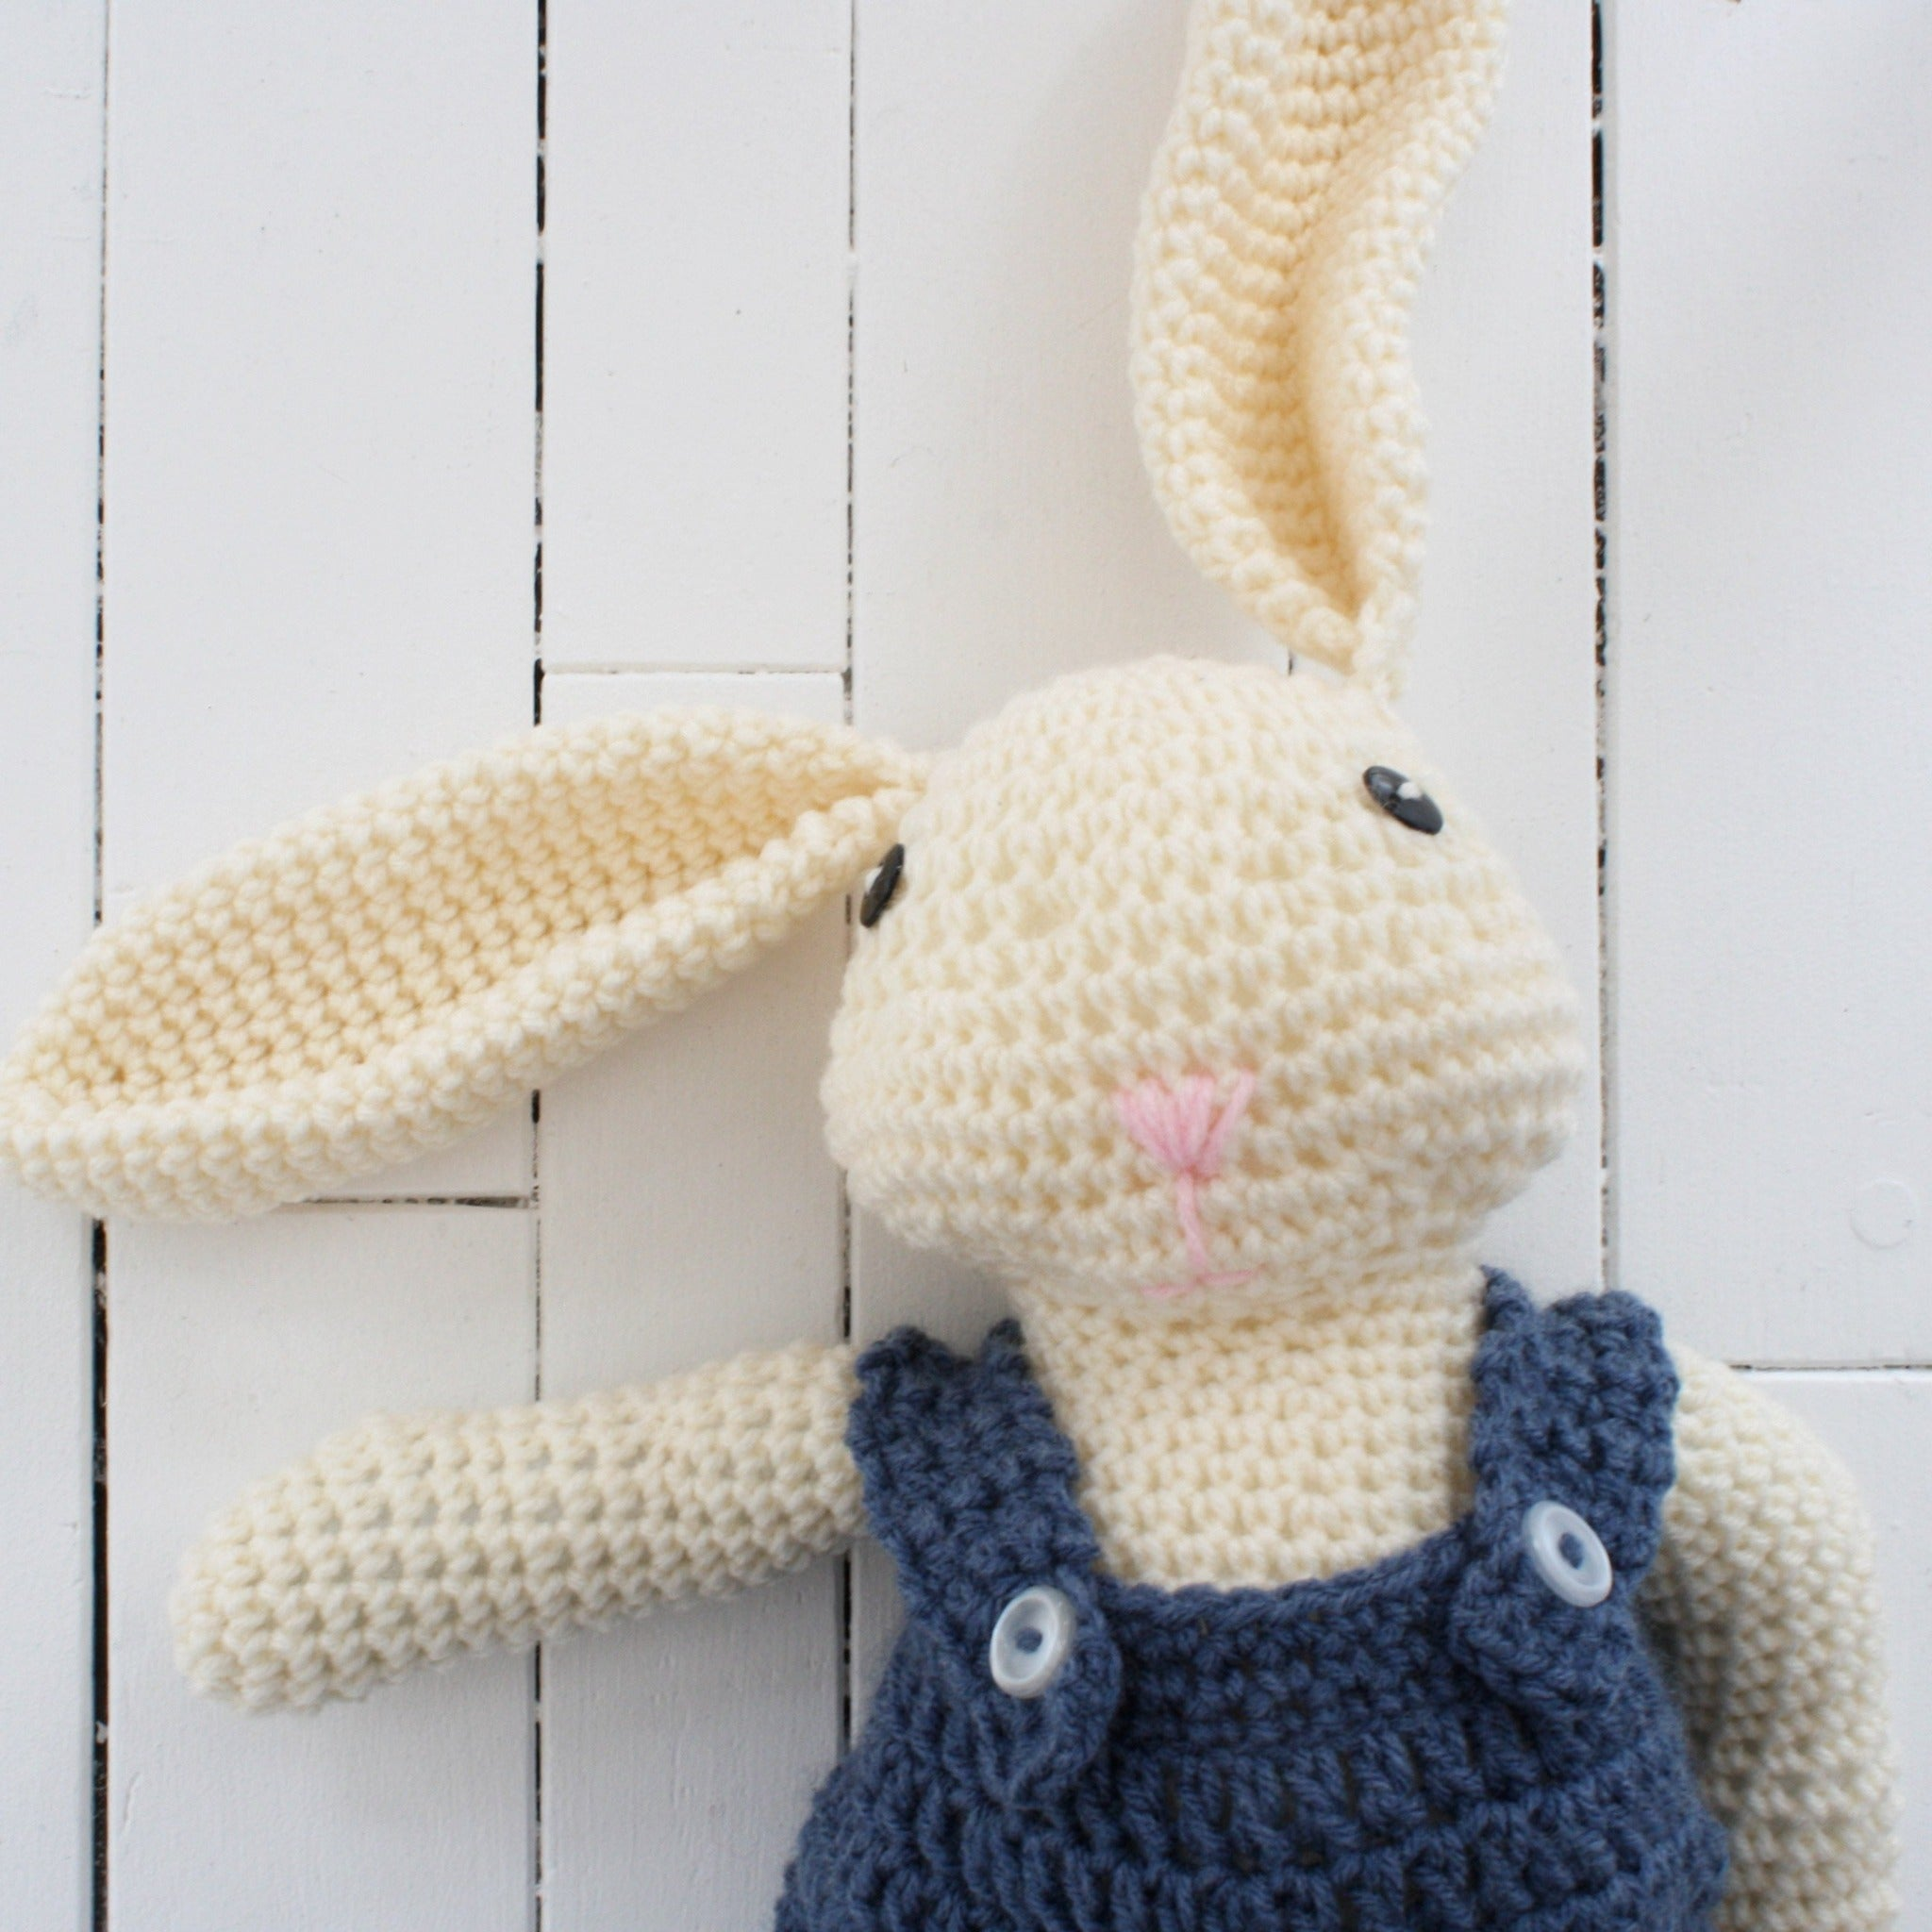 crocheted rabbit with blue overals and button eyes